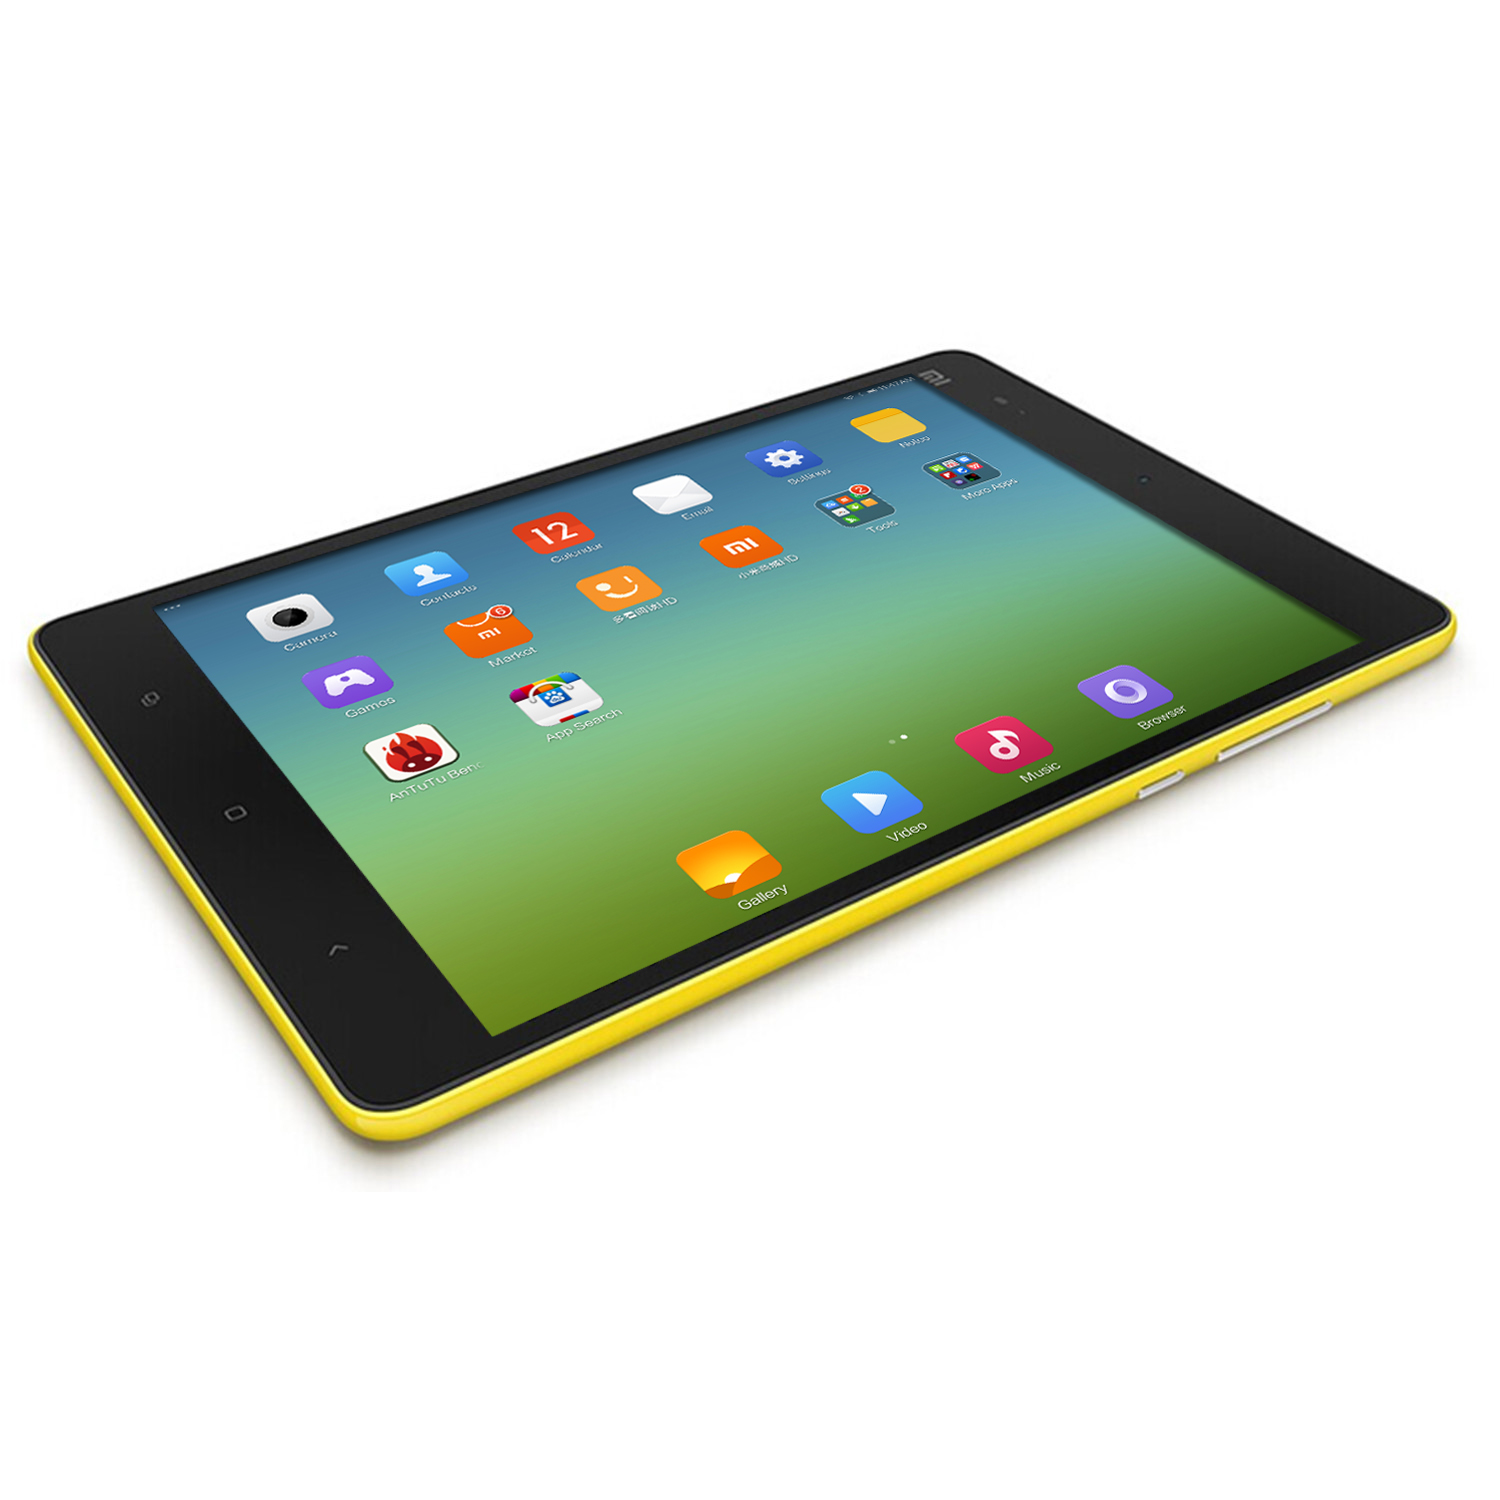 XIAOMI MI PAD Tablet PC Tegra K1 7.9 Inch Android 4.4 Retina IPS Screen 2GB 16GB Yellow